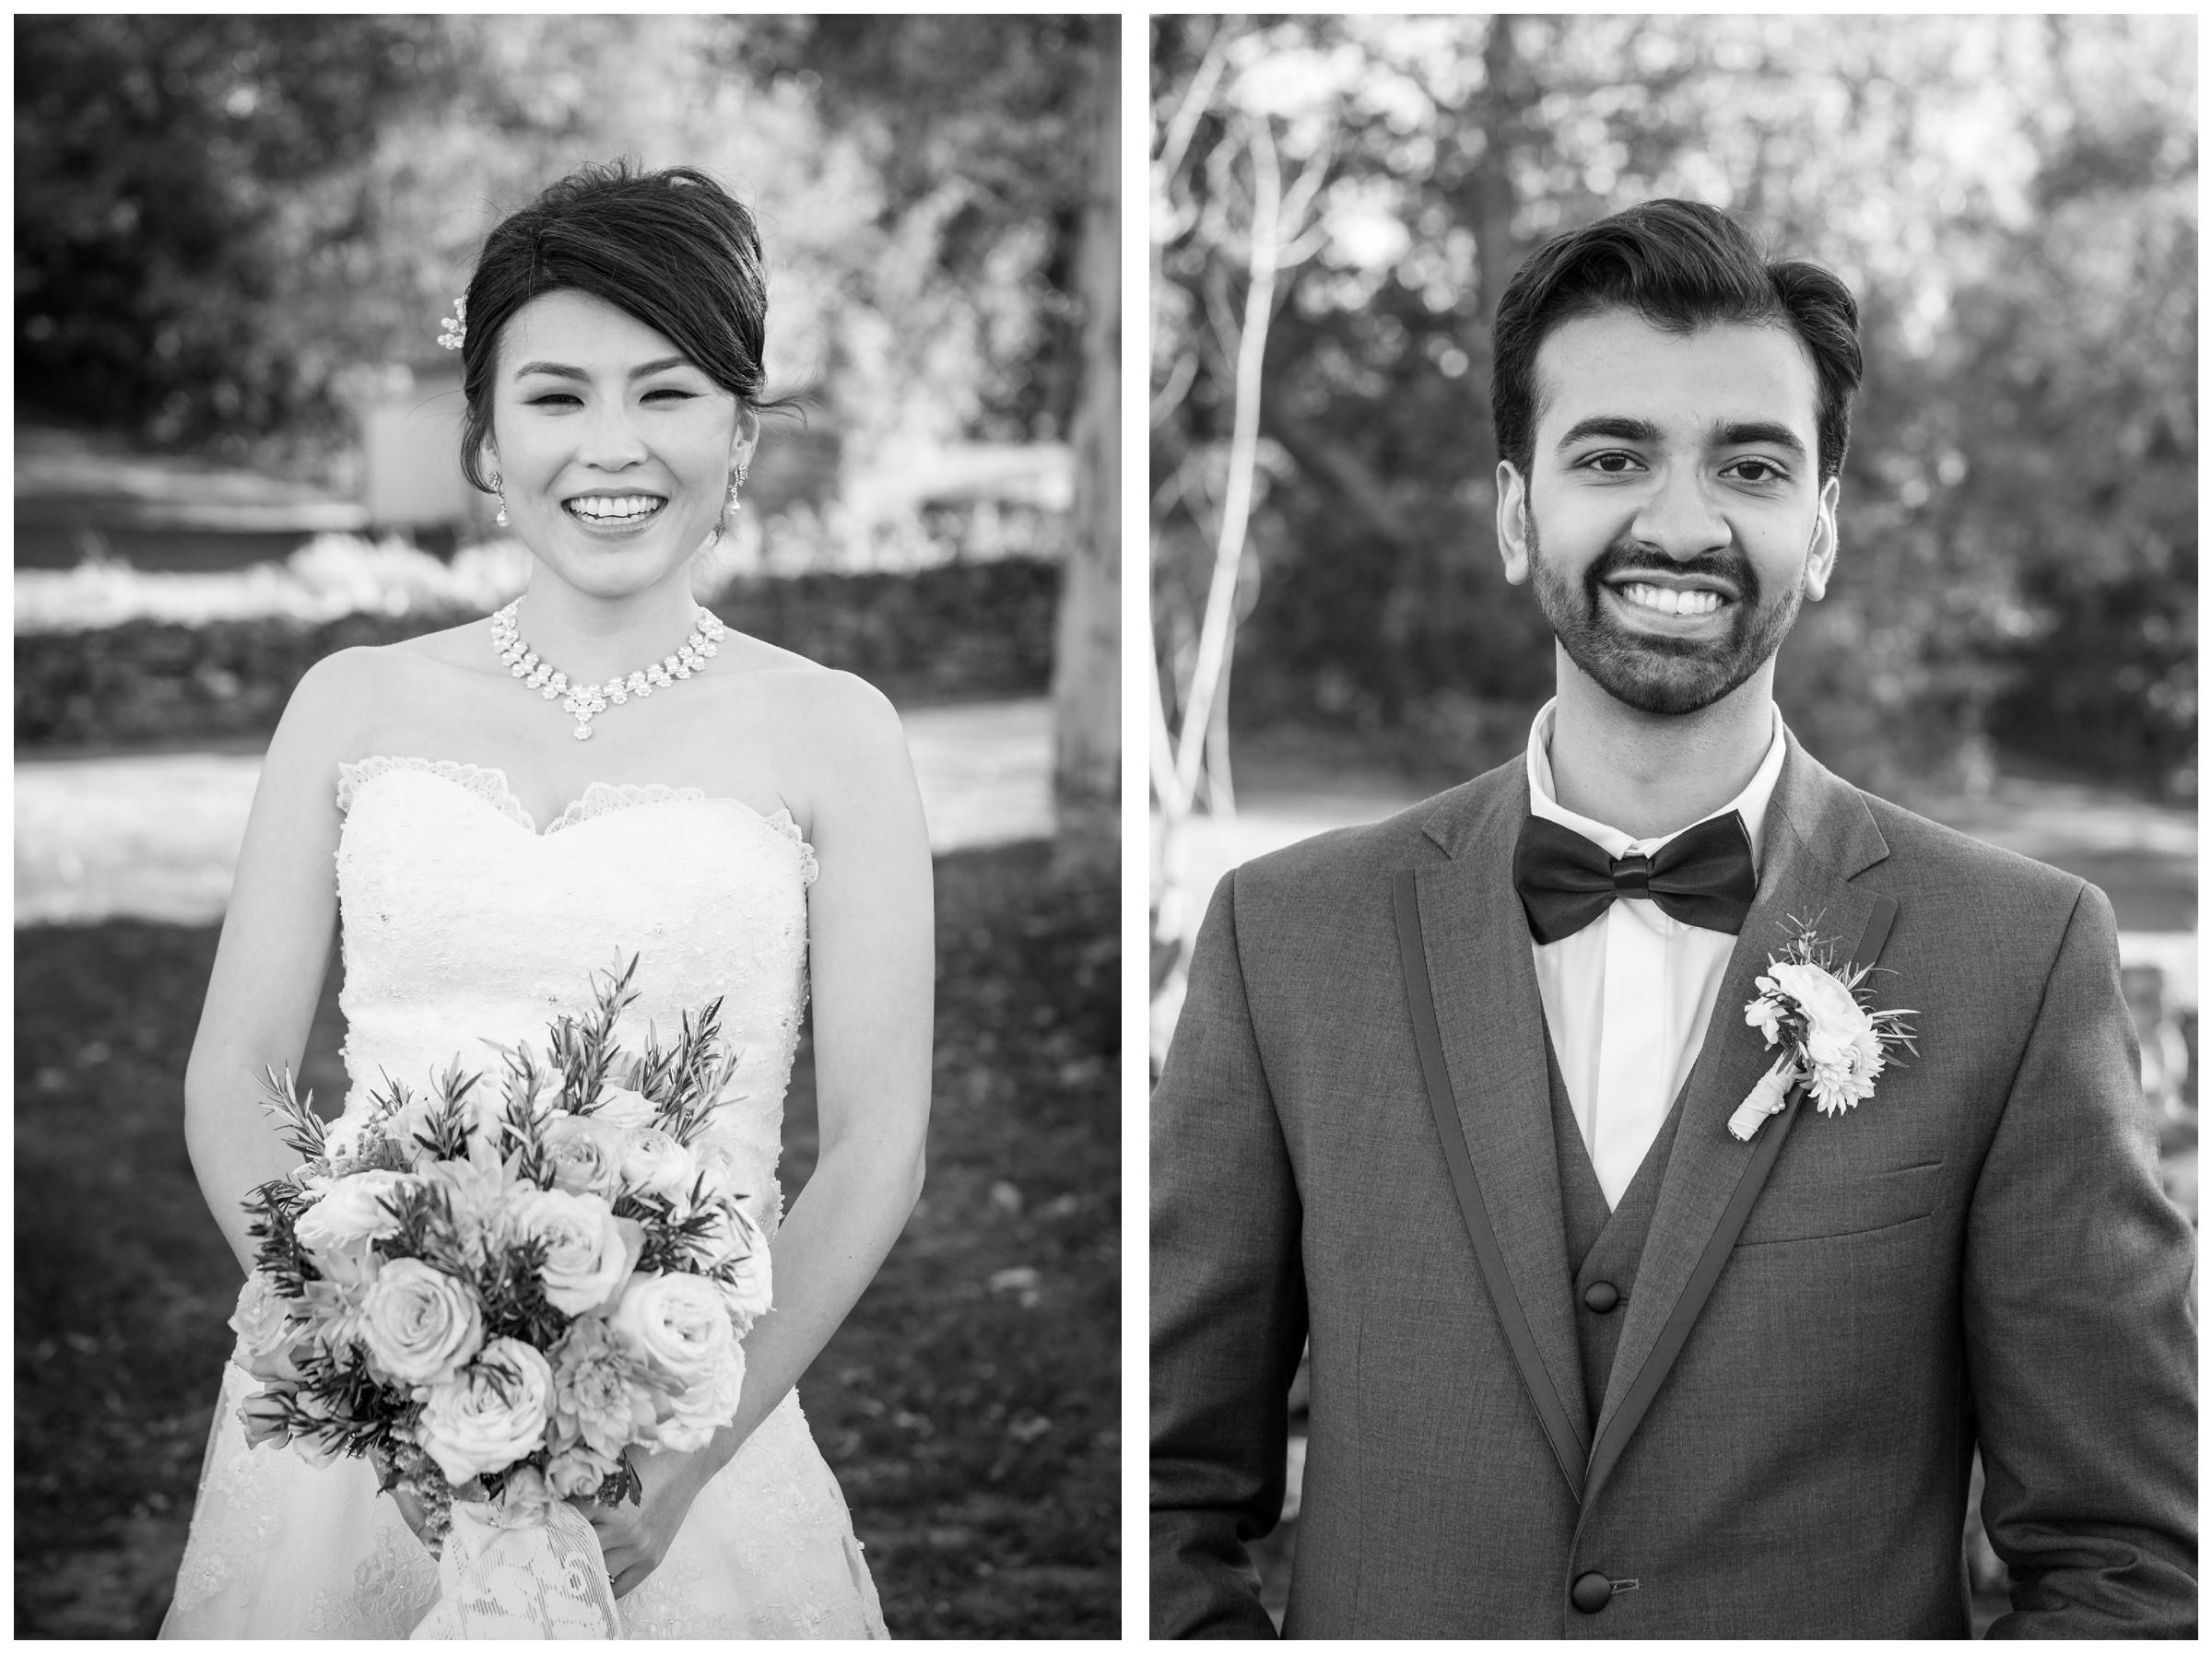 Black and white portraits of bride and groom on wedding day.